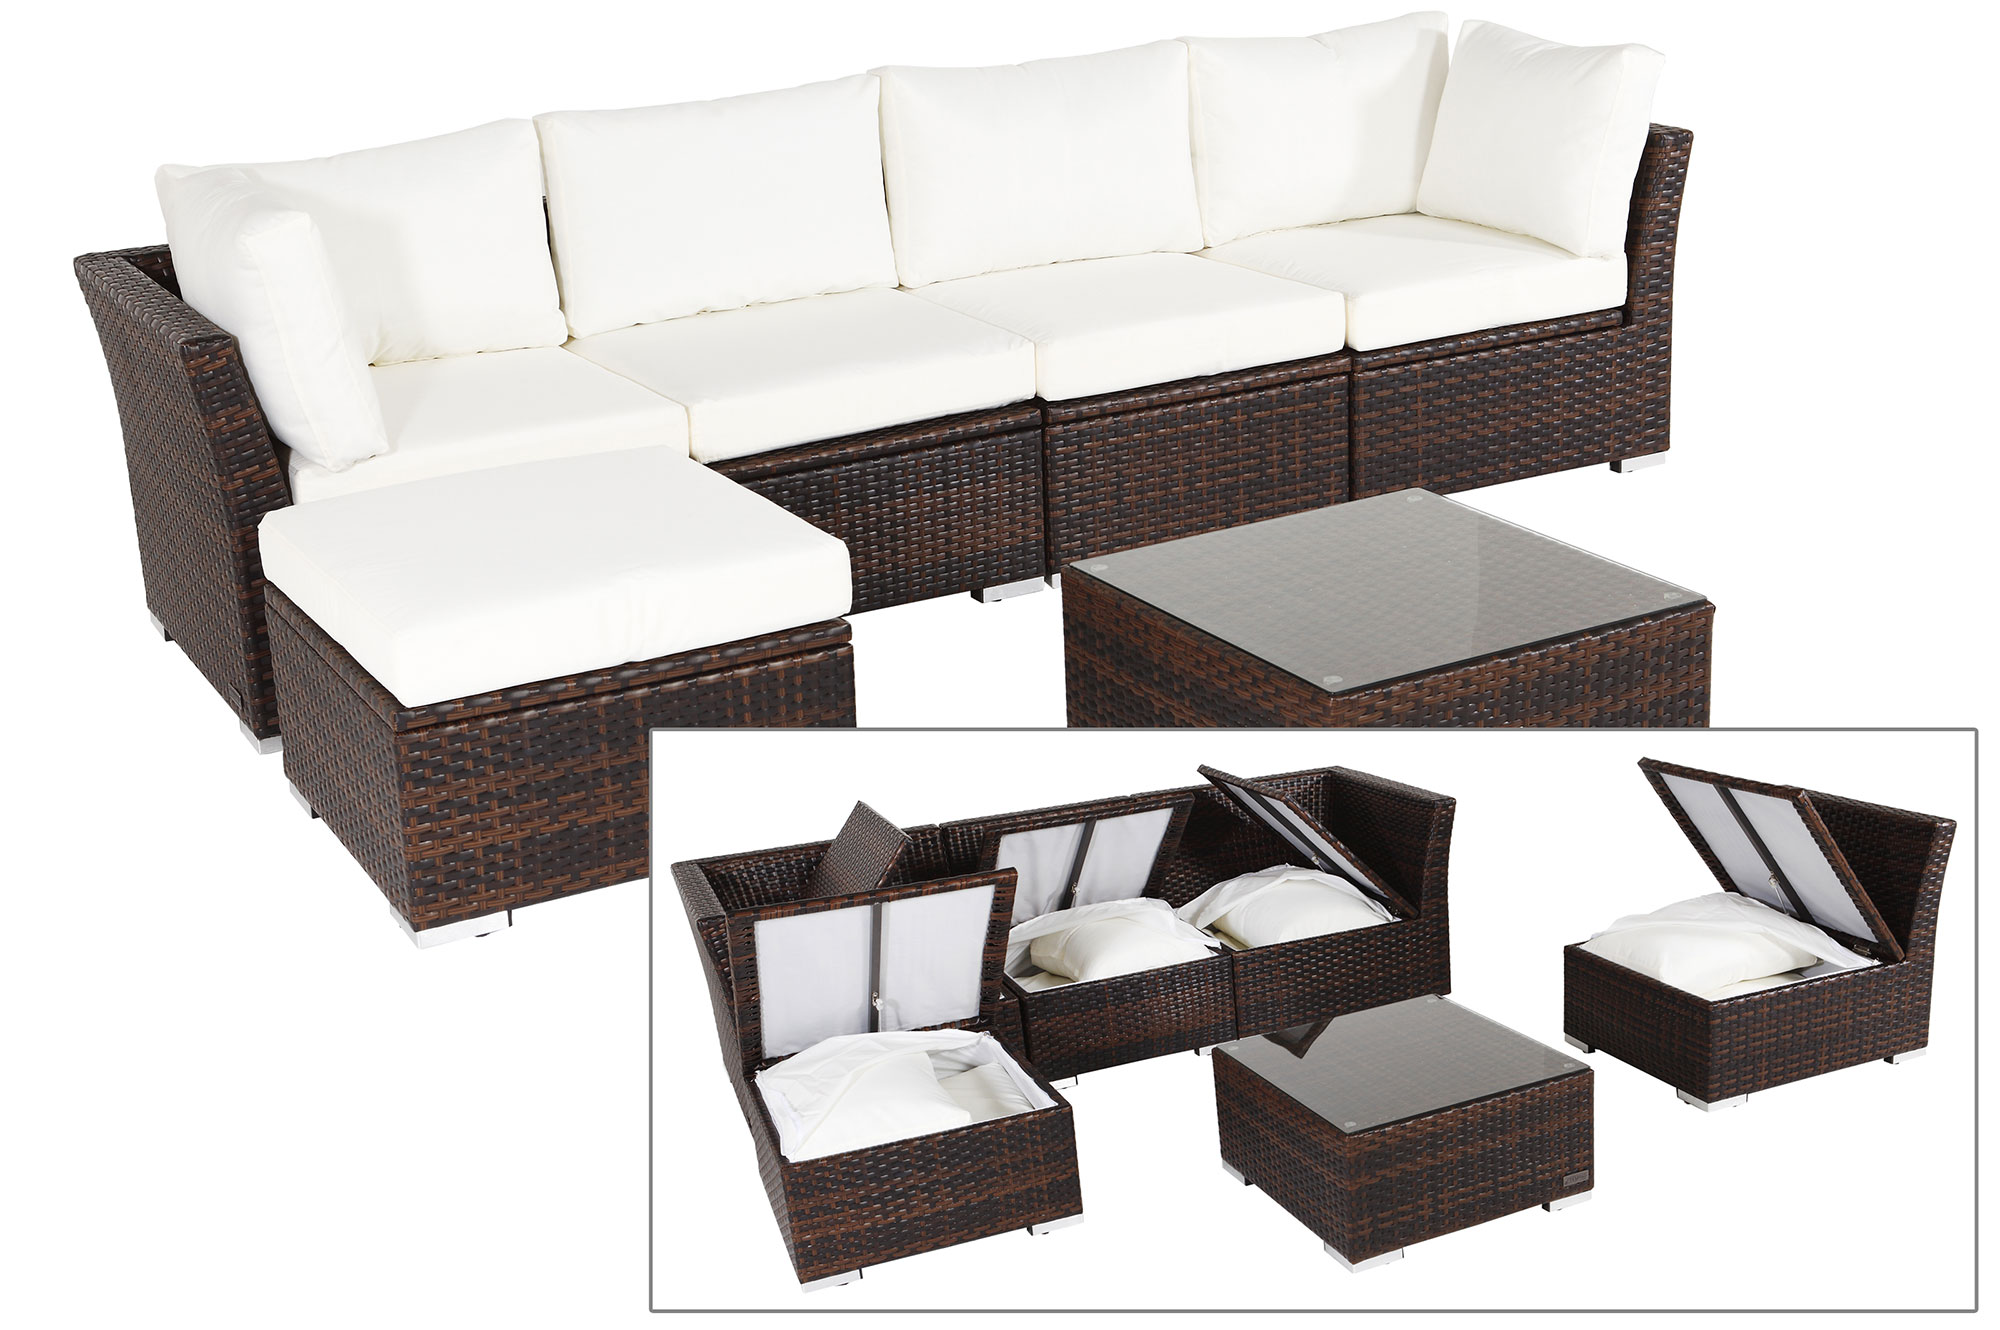 outflexx rattan gartenm bel aus polyrattan mit kissenboxfunktion f r 5 personen braun marmoriert. Black Bedroom Furniture Sets. Home Design Ideas